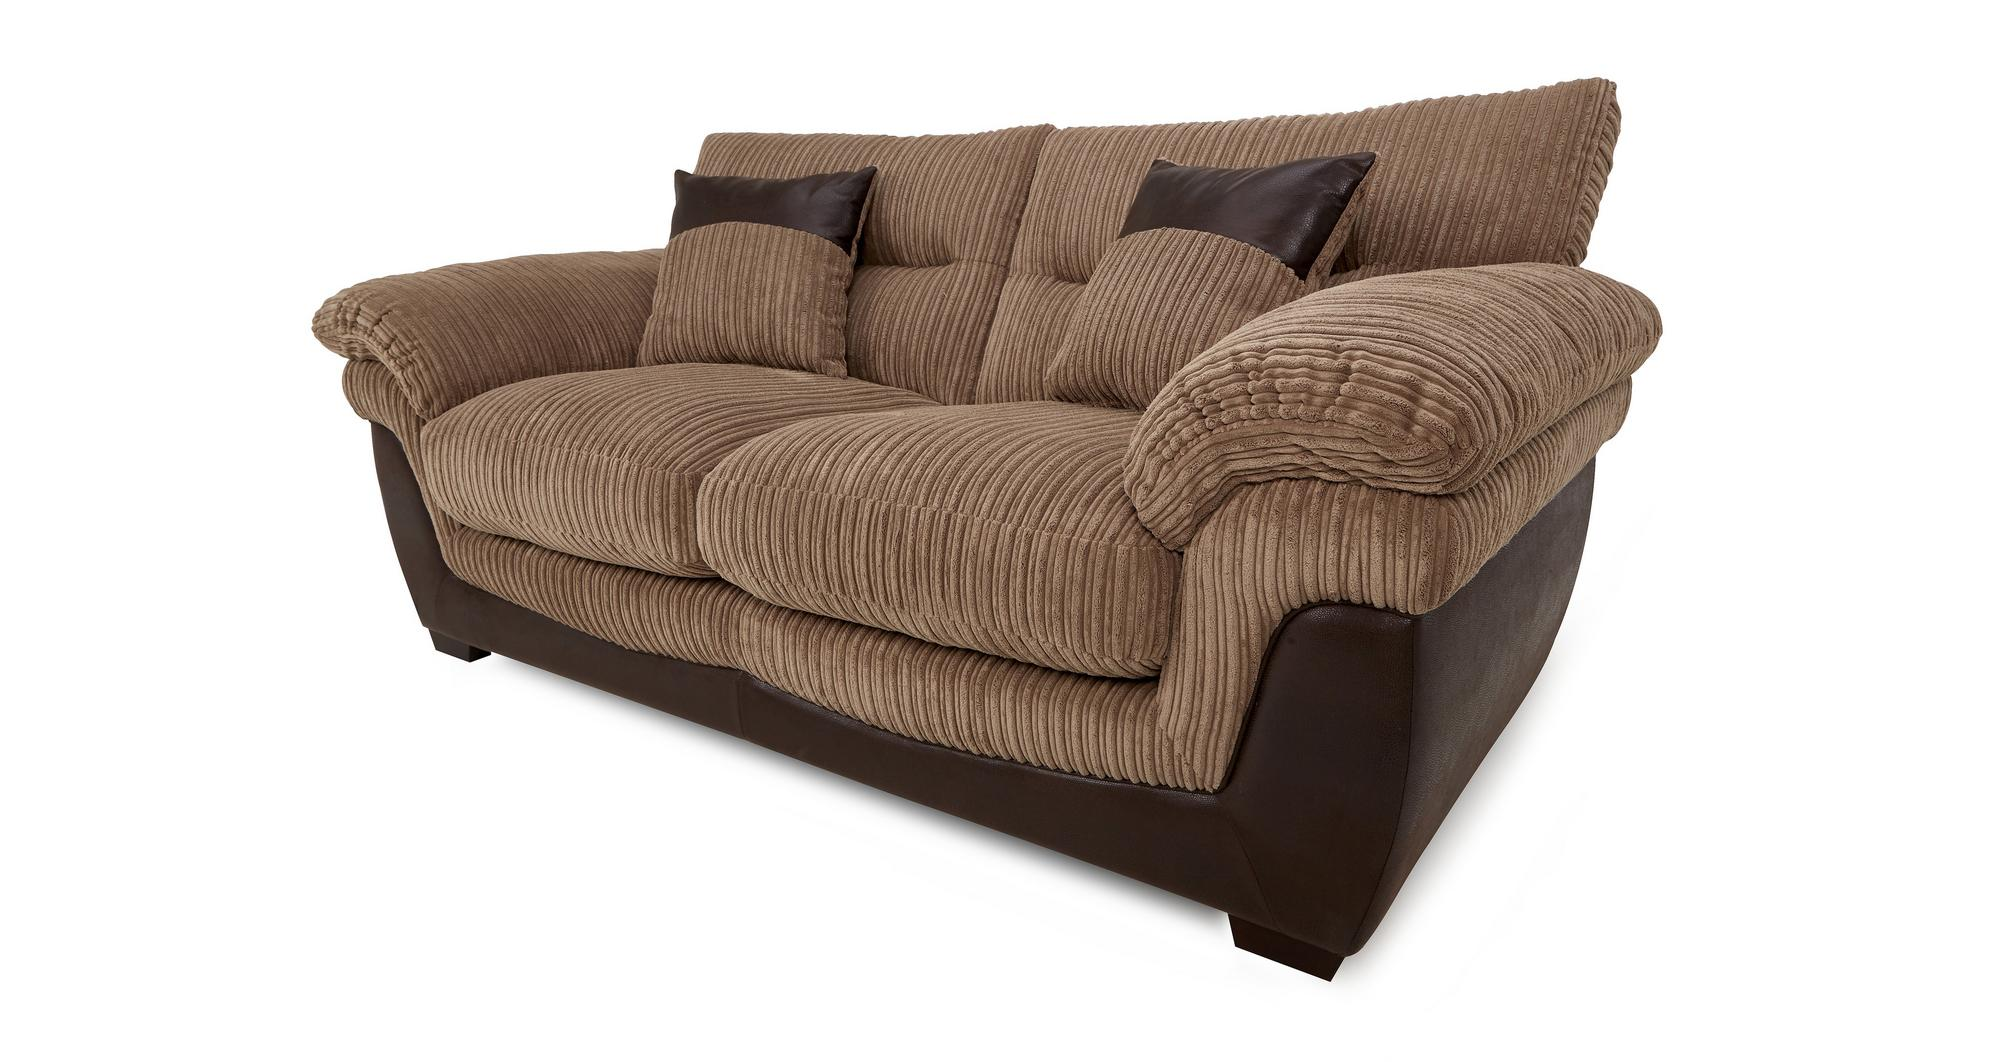 Dfs Bexley Nutmeg Brown Fabric Large 2 Seater Sofa Bed Ebay